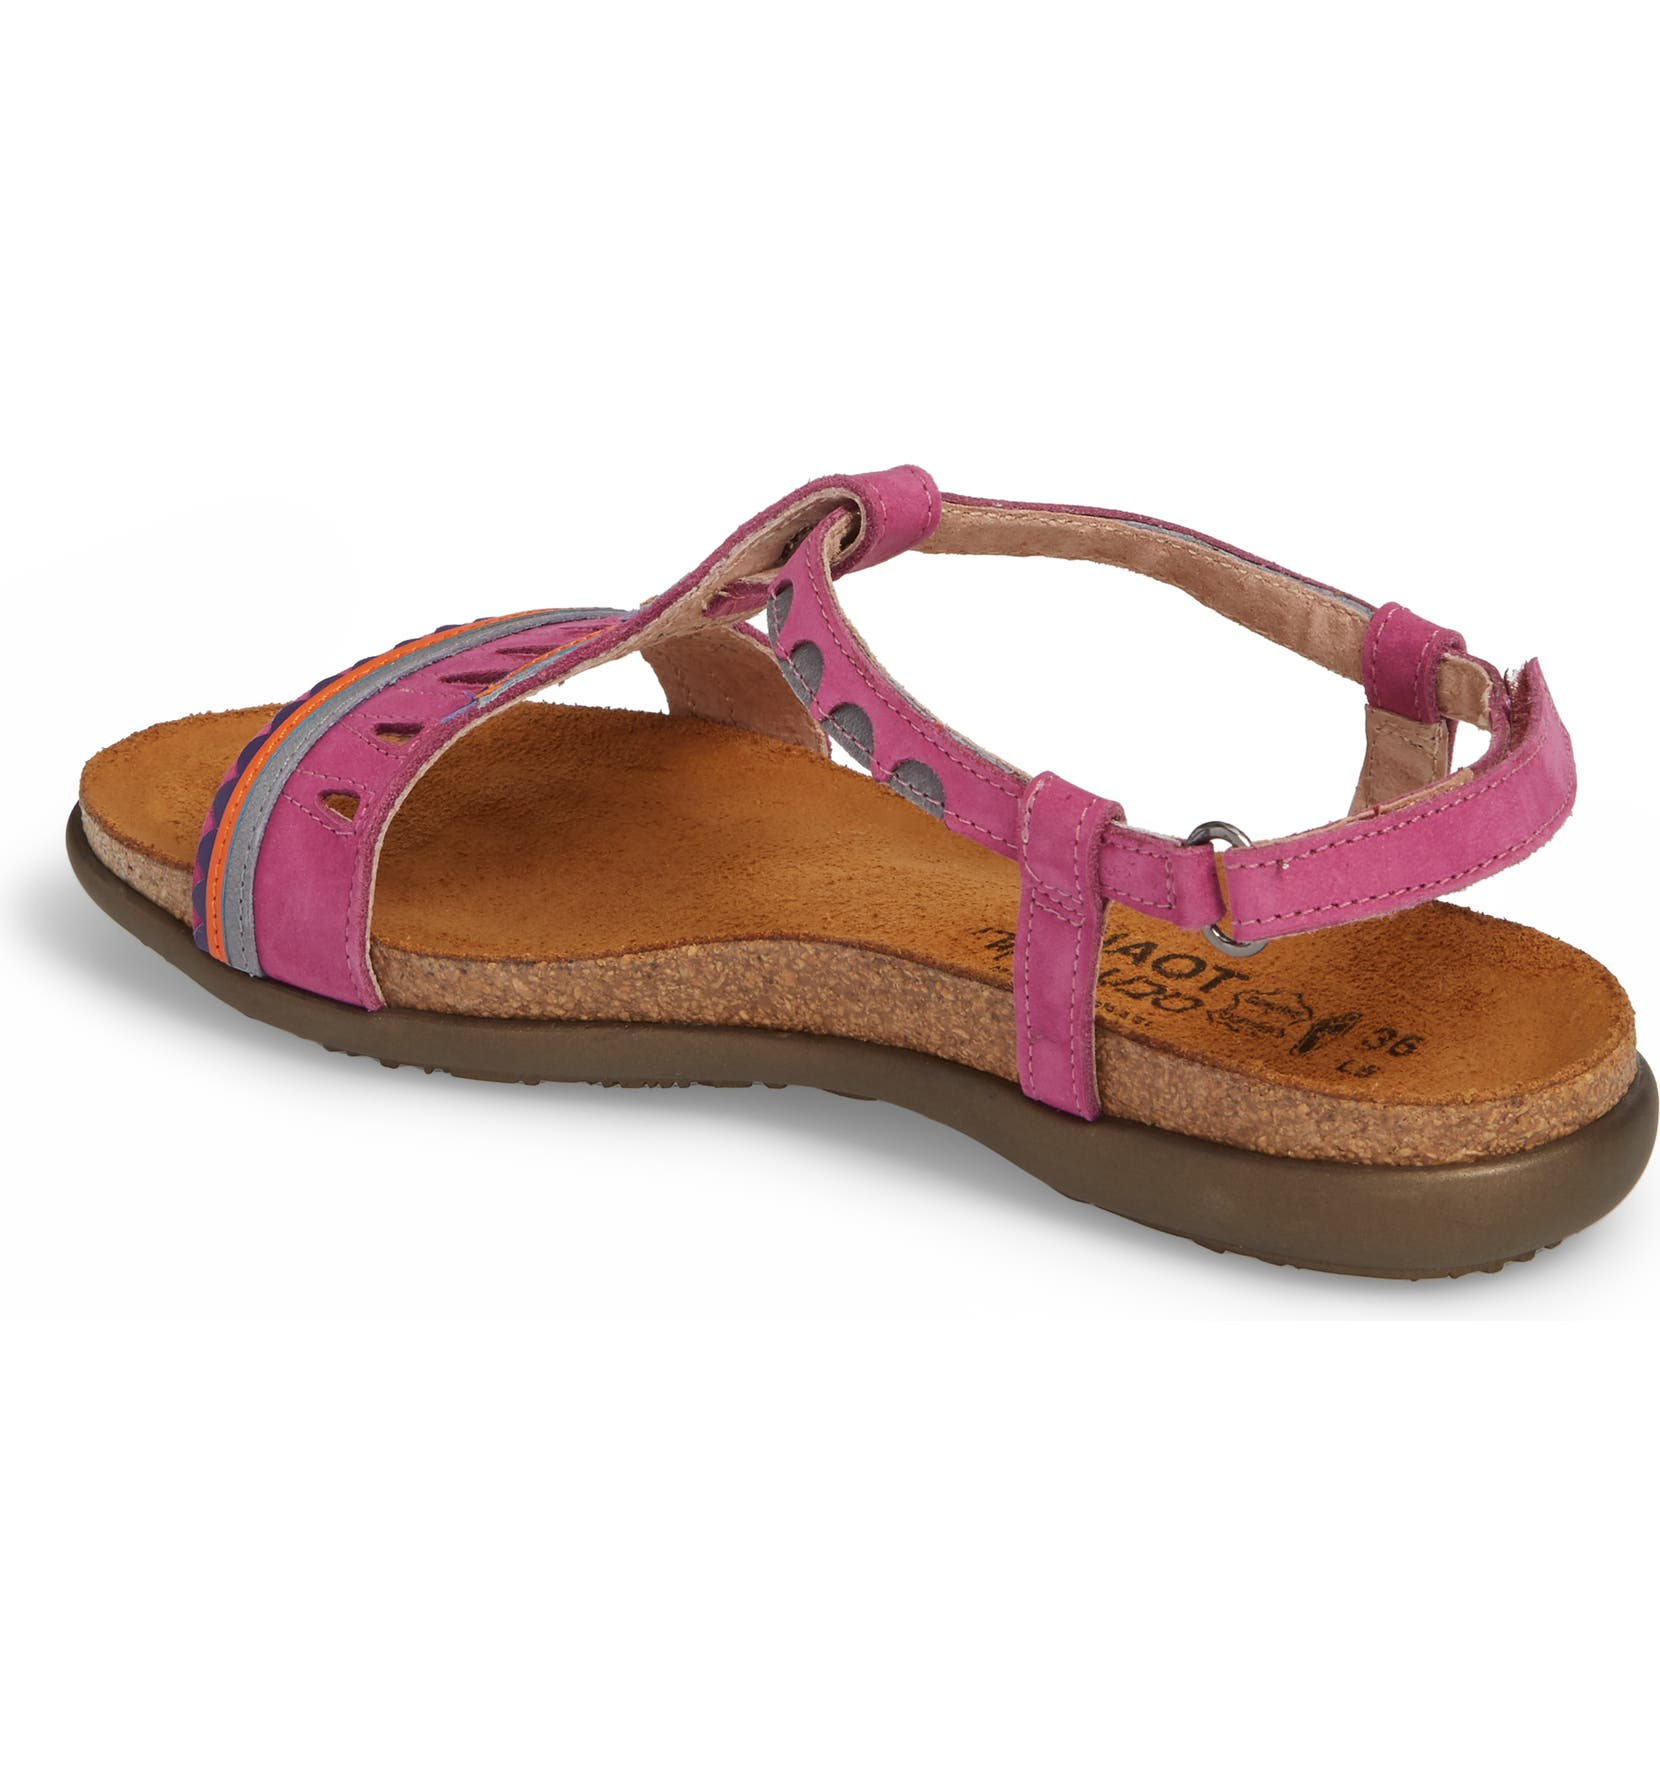 d9fa44aa55bb Naot Odelia Perforated T-Strap Sandal (Women)